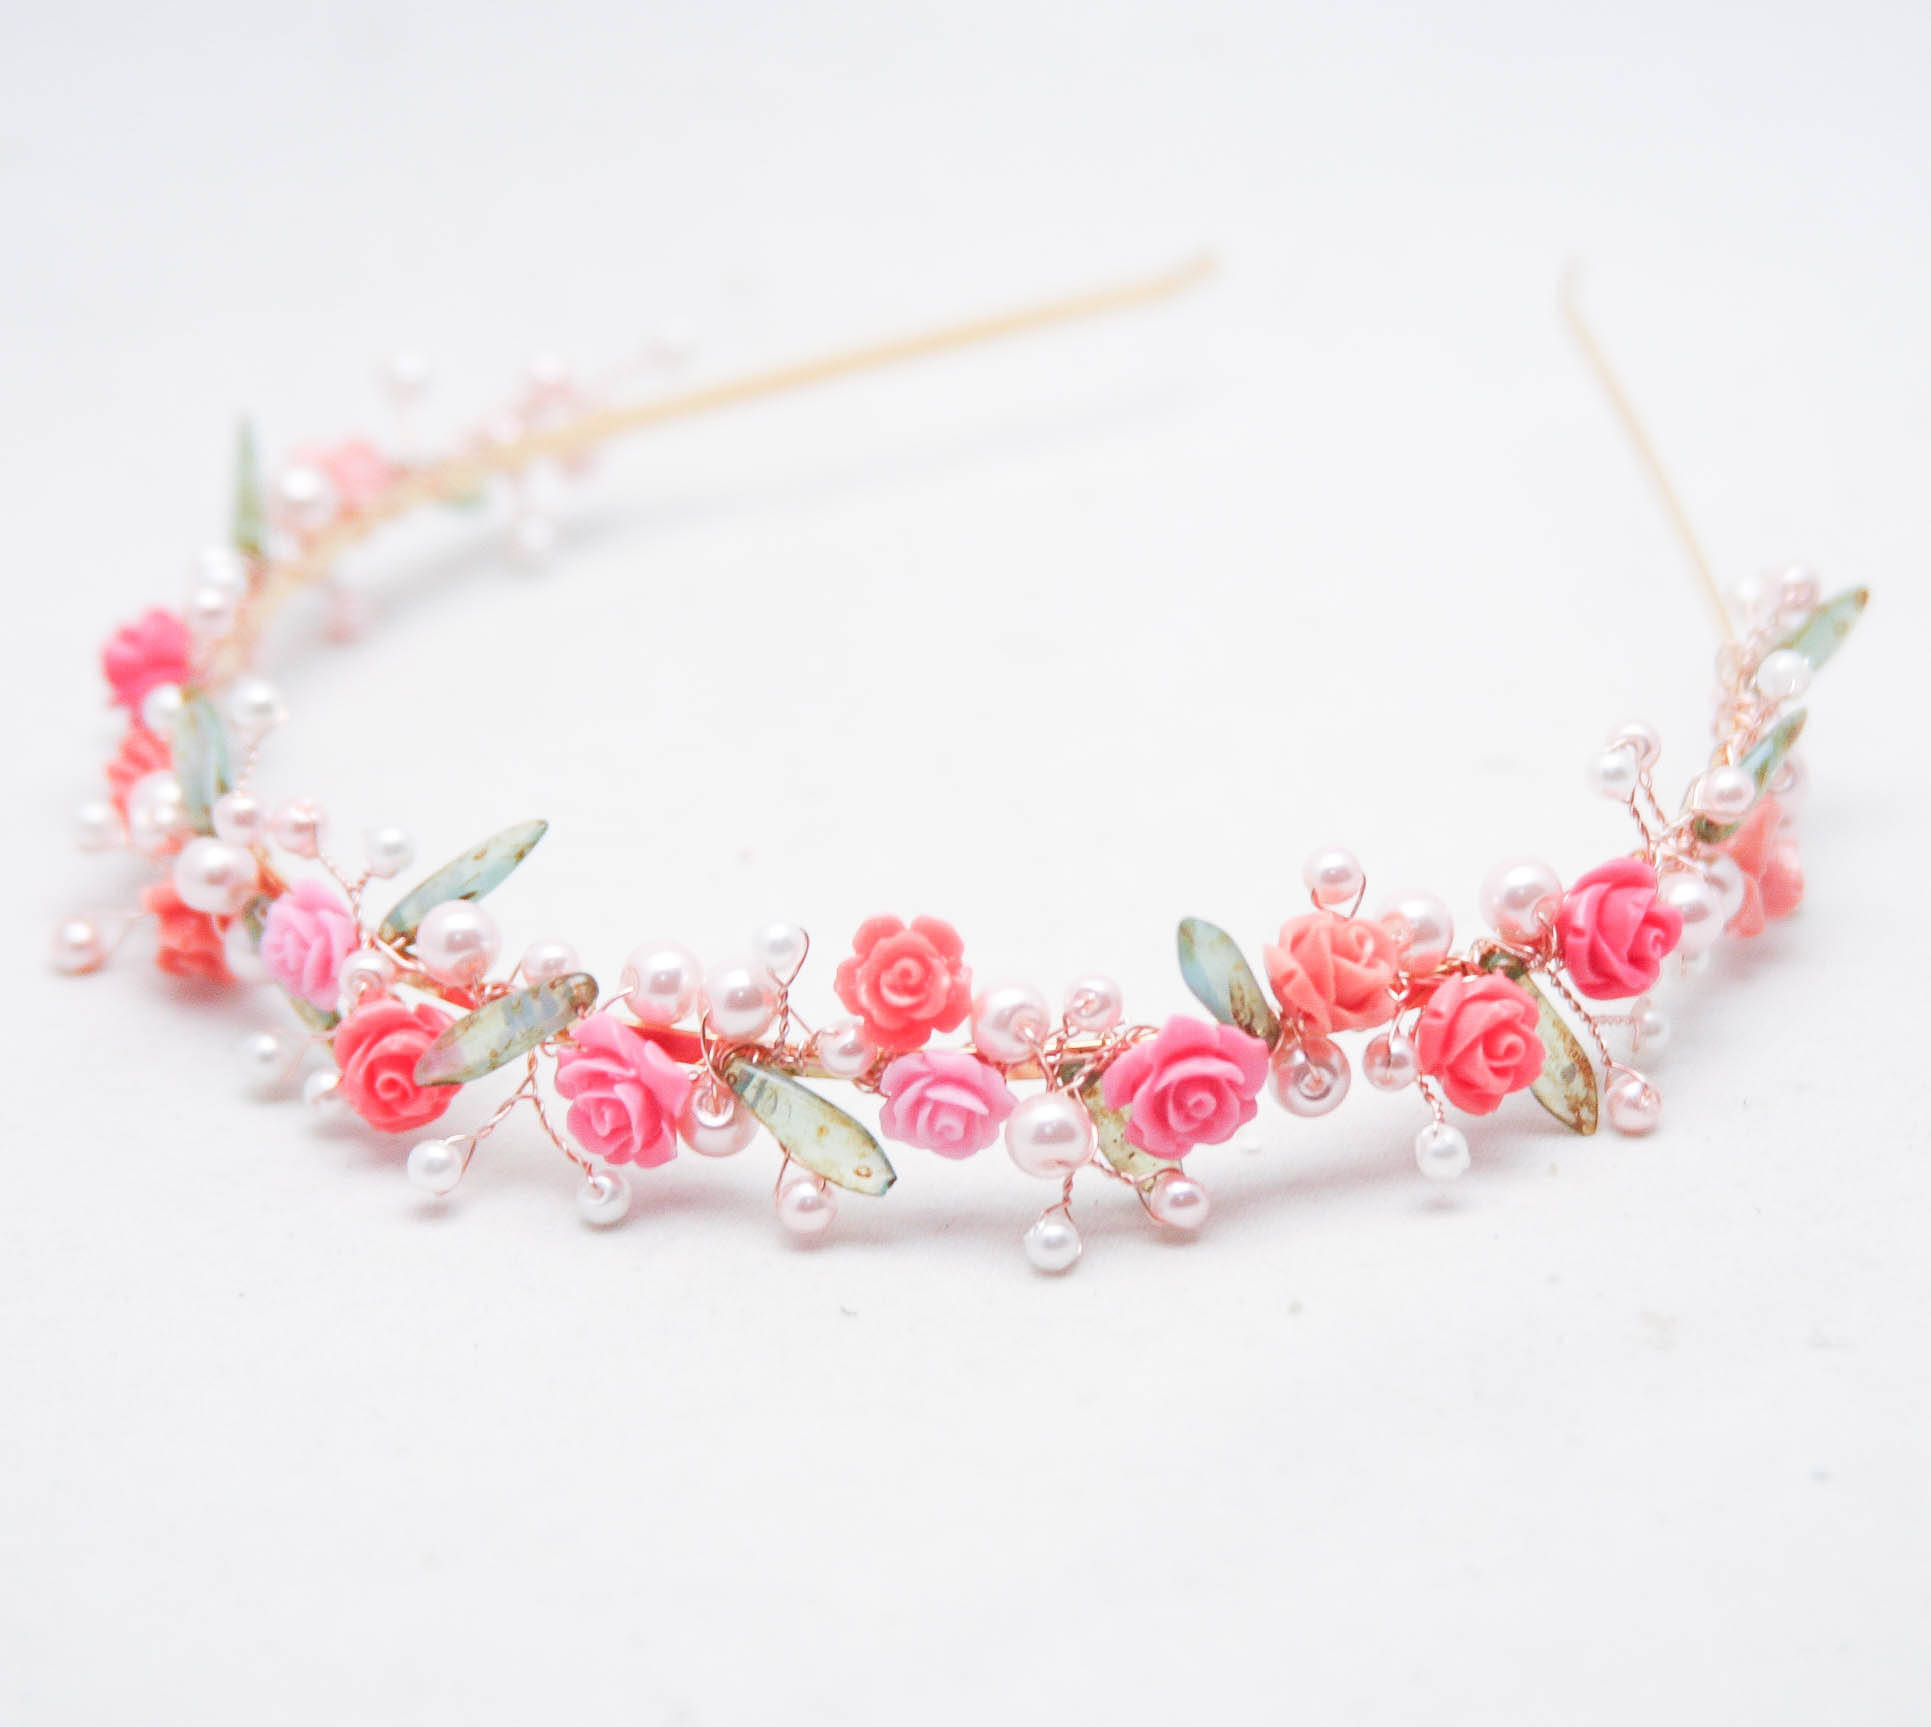 76af0c023ba Flower Wedding Tiara in Pink Rose Gold   Green